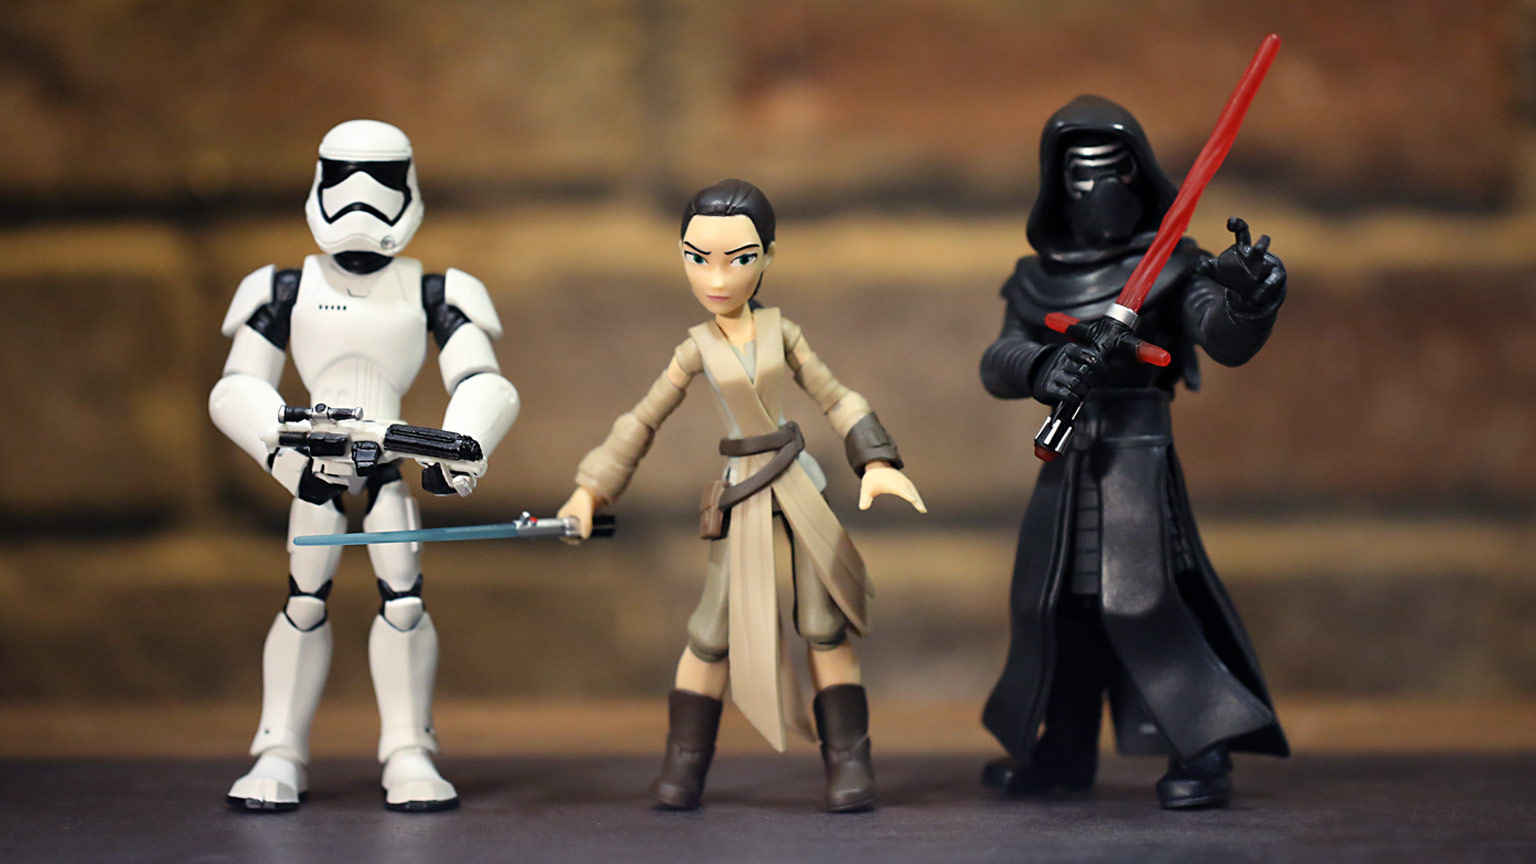 Star Wars Toys : Inside the new disney infinity inspired star wars toybox